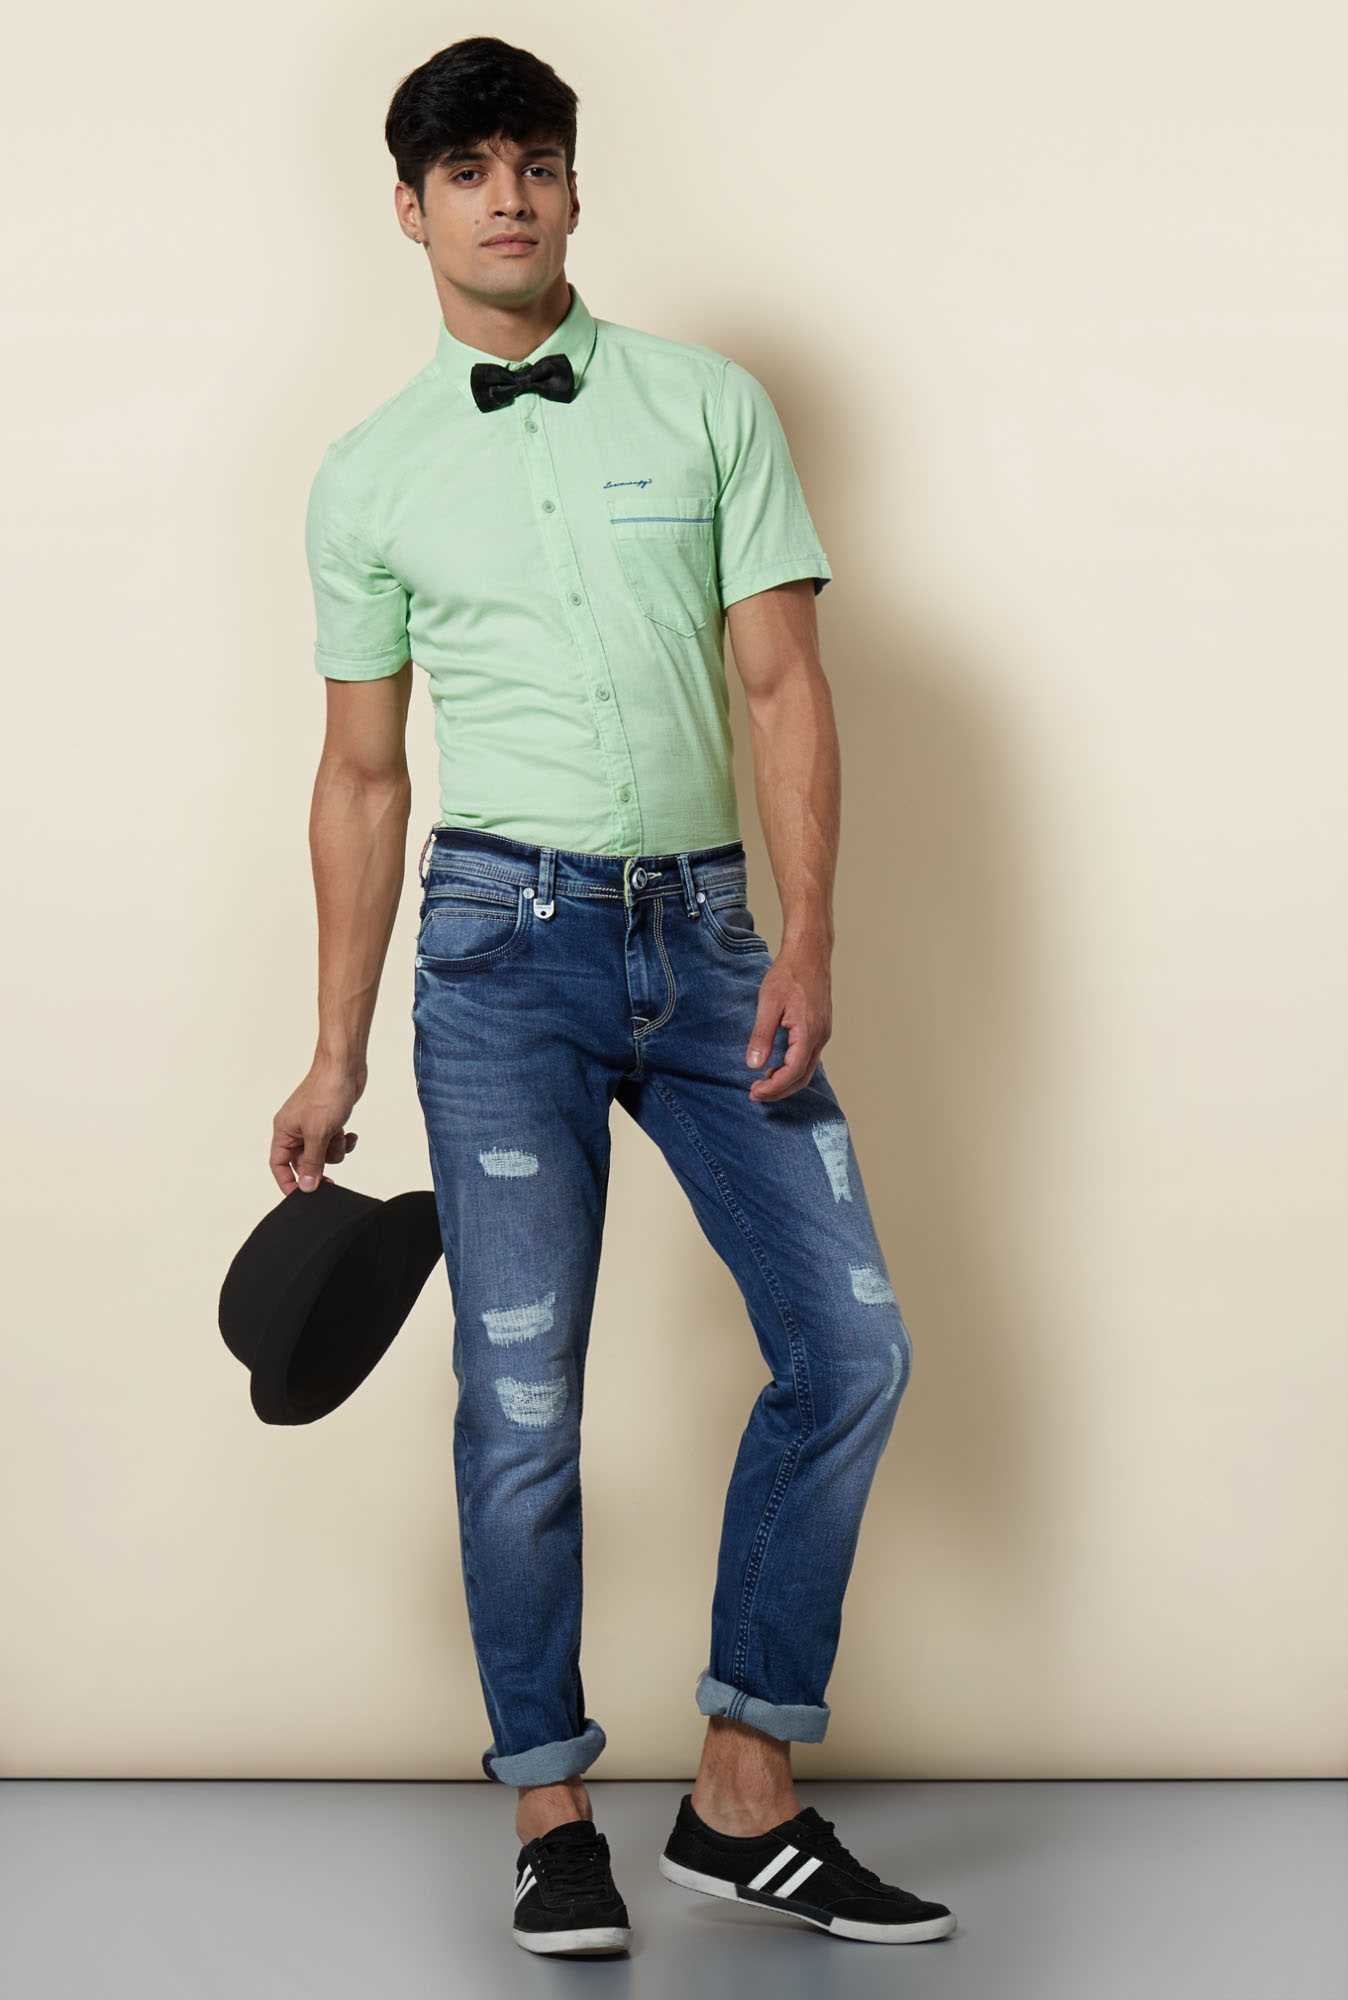 Lawman Green Short Sleeve Casual Shirt